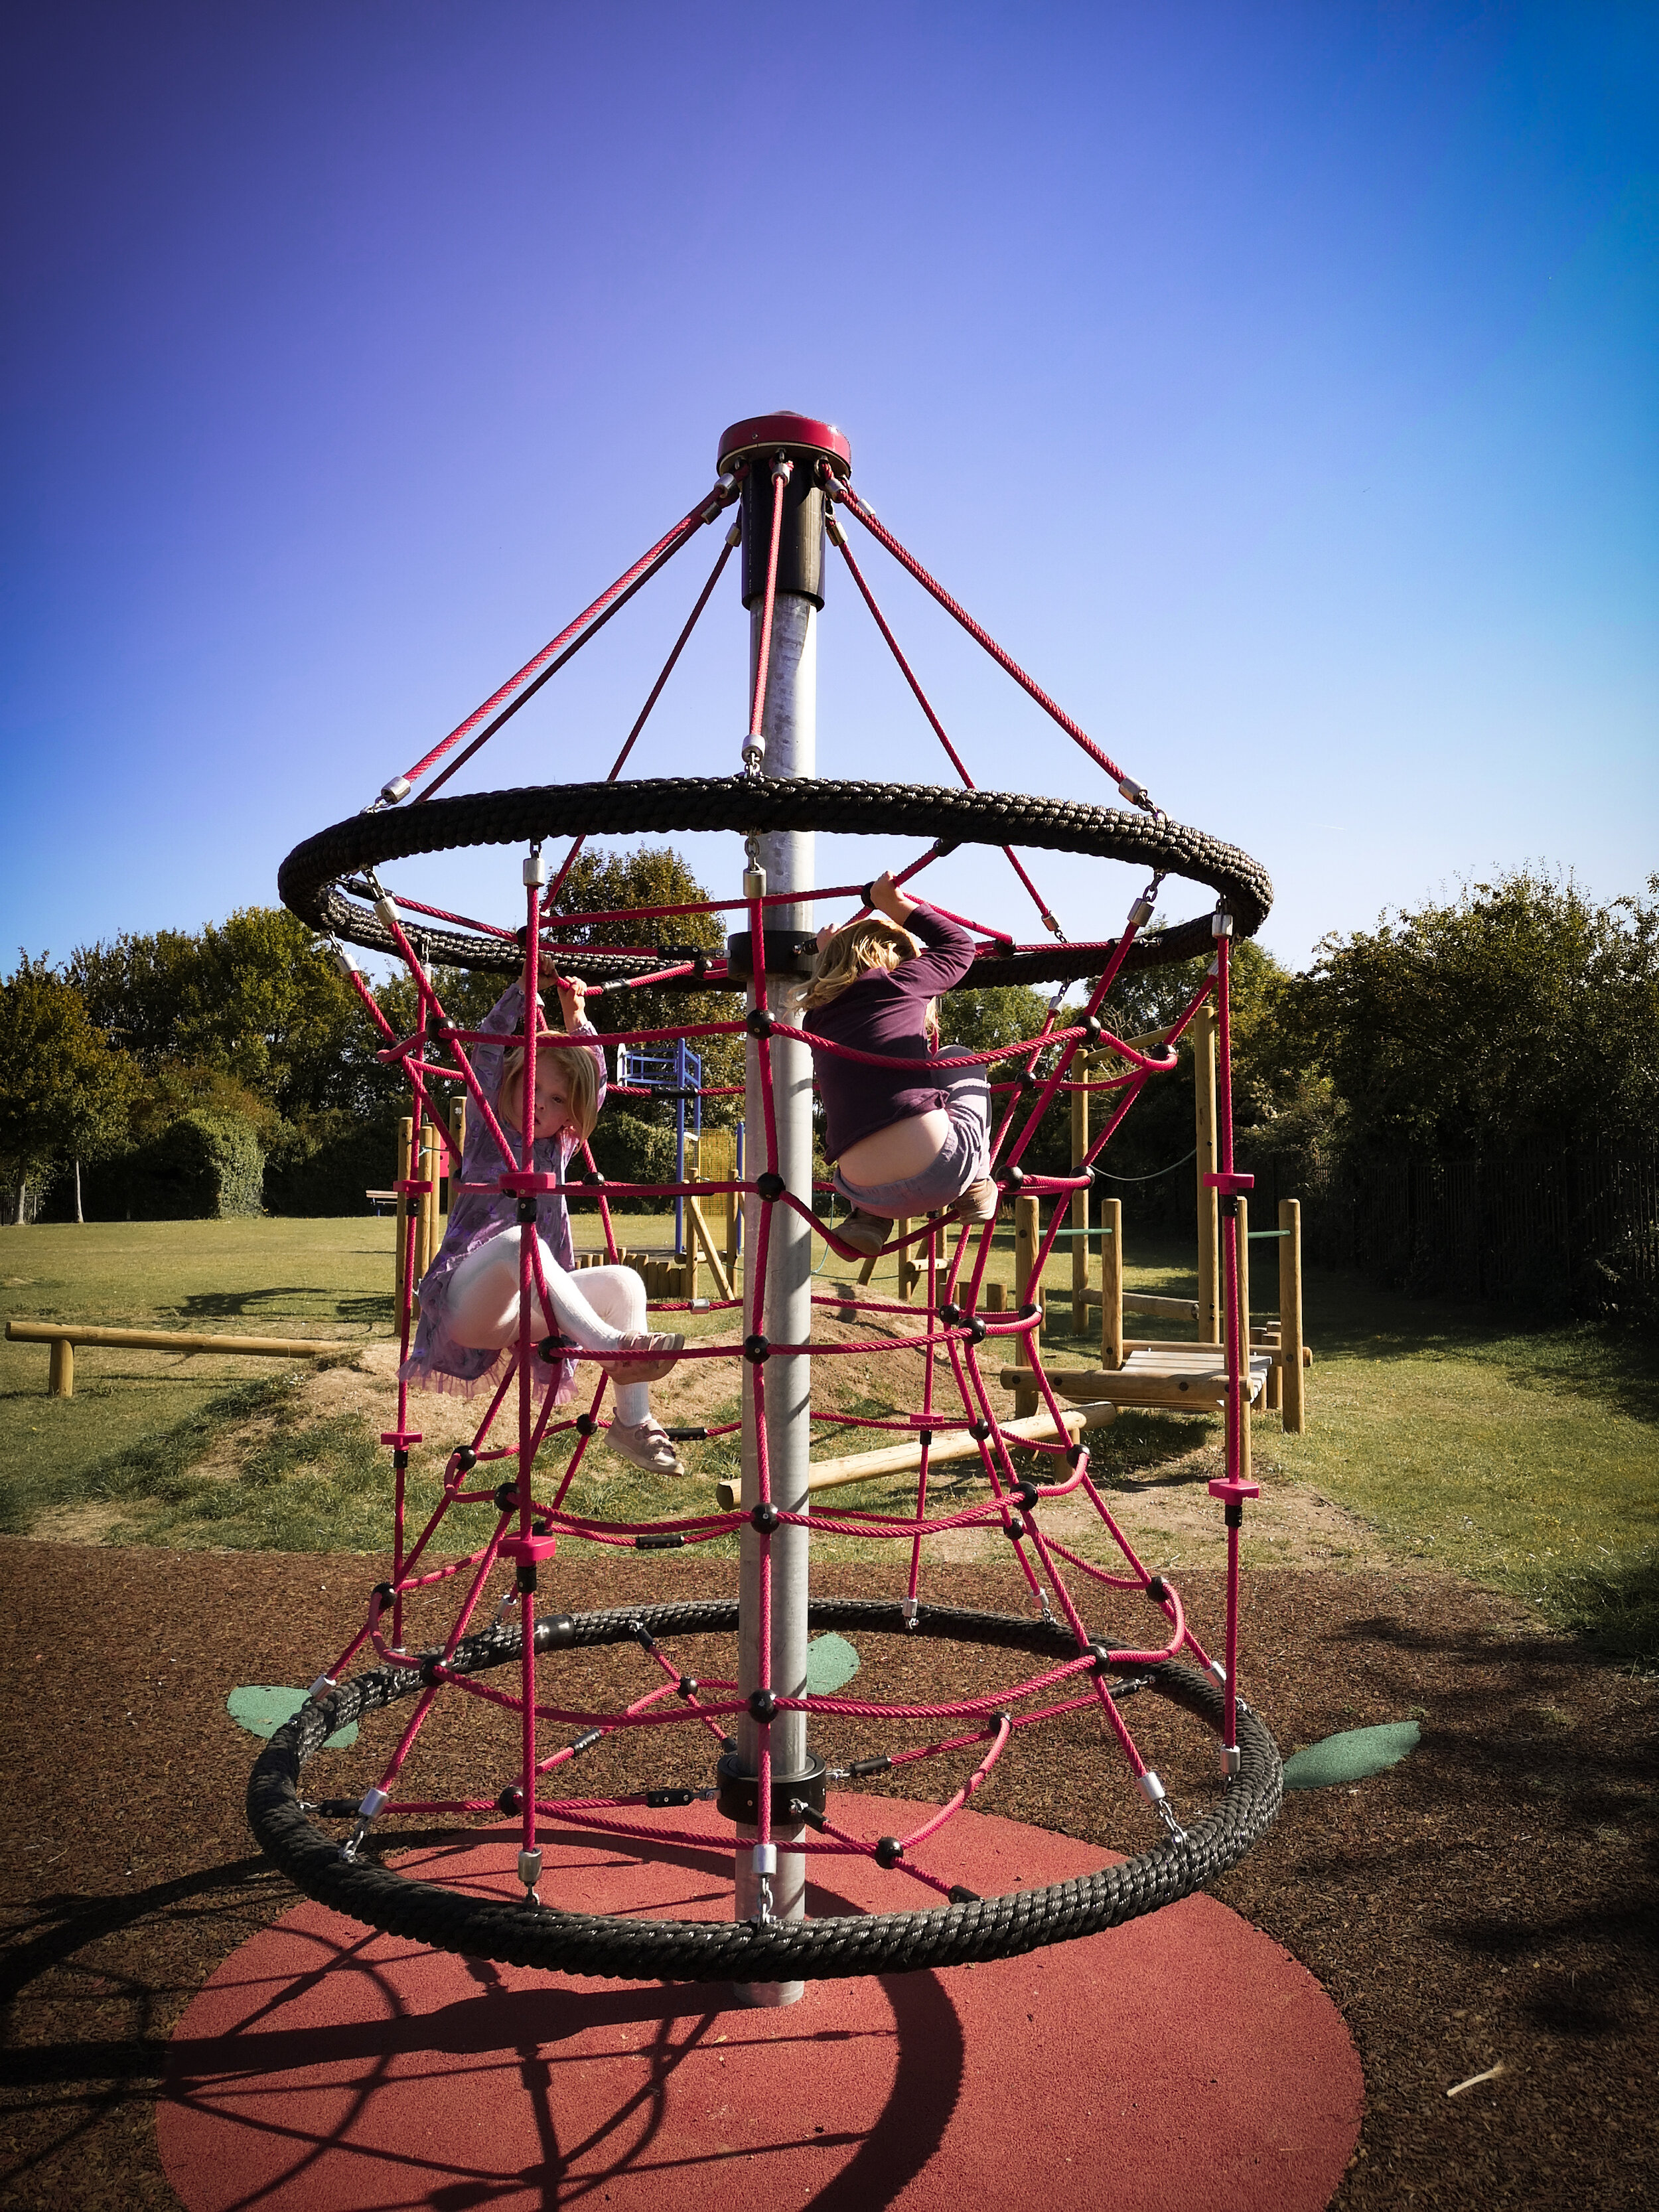 Gordon Ave Playground, Highcliffe is near the path for the South Downs